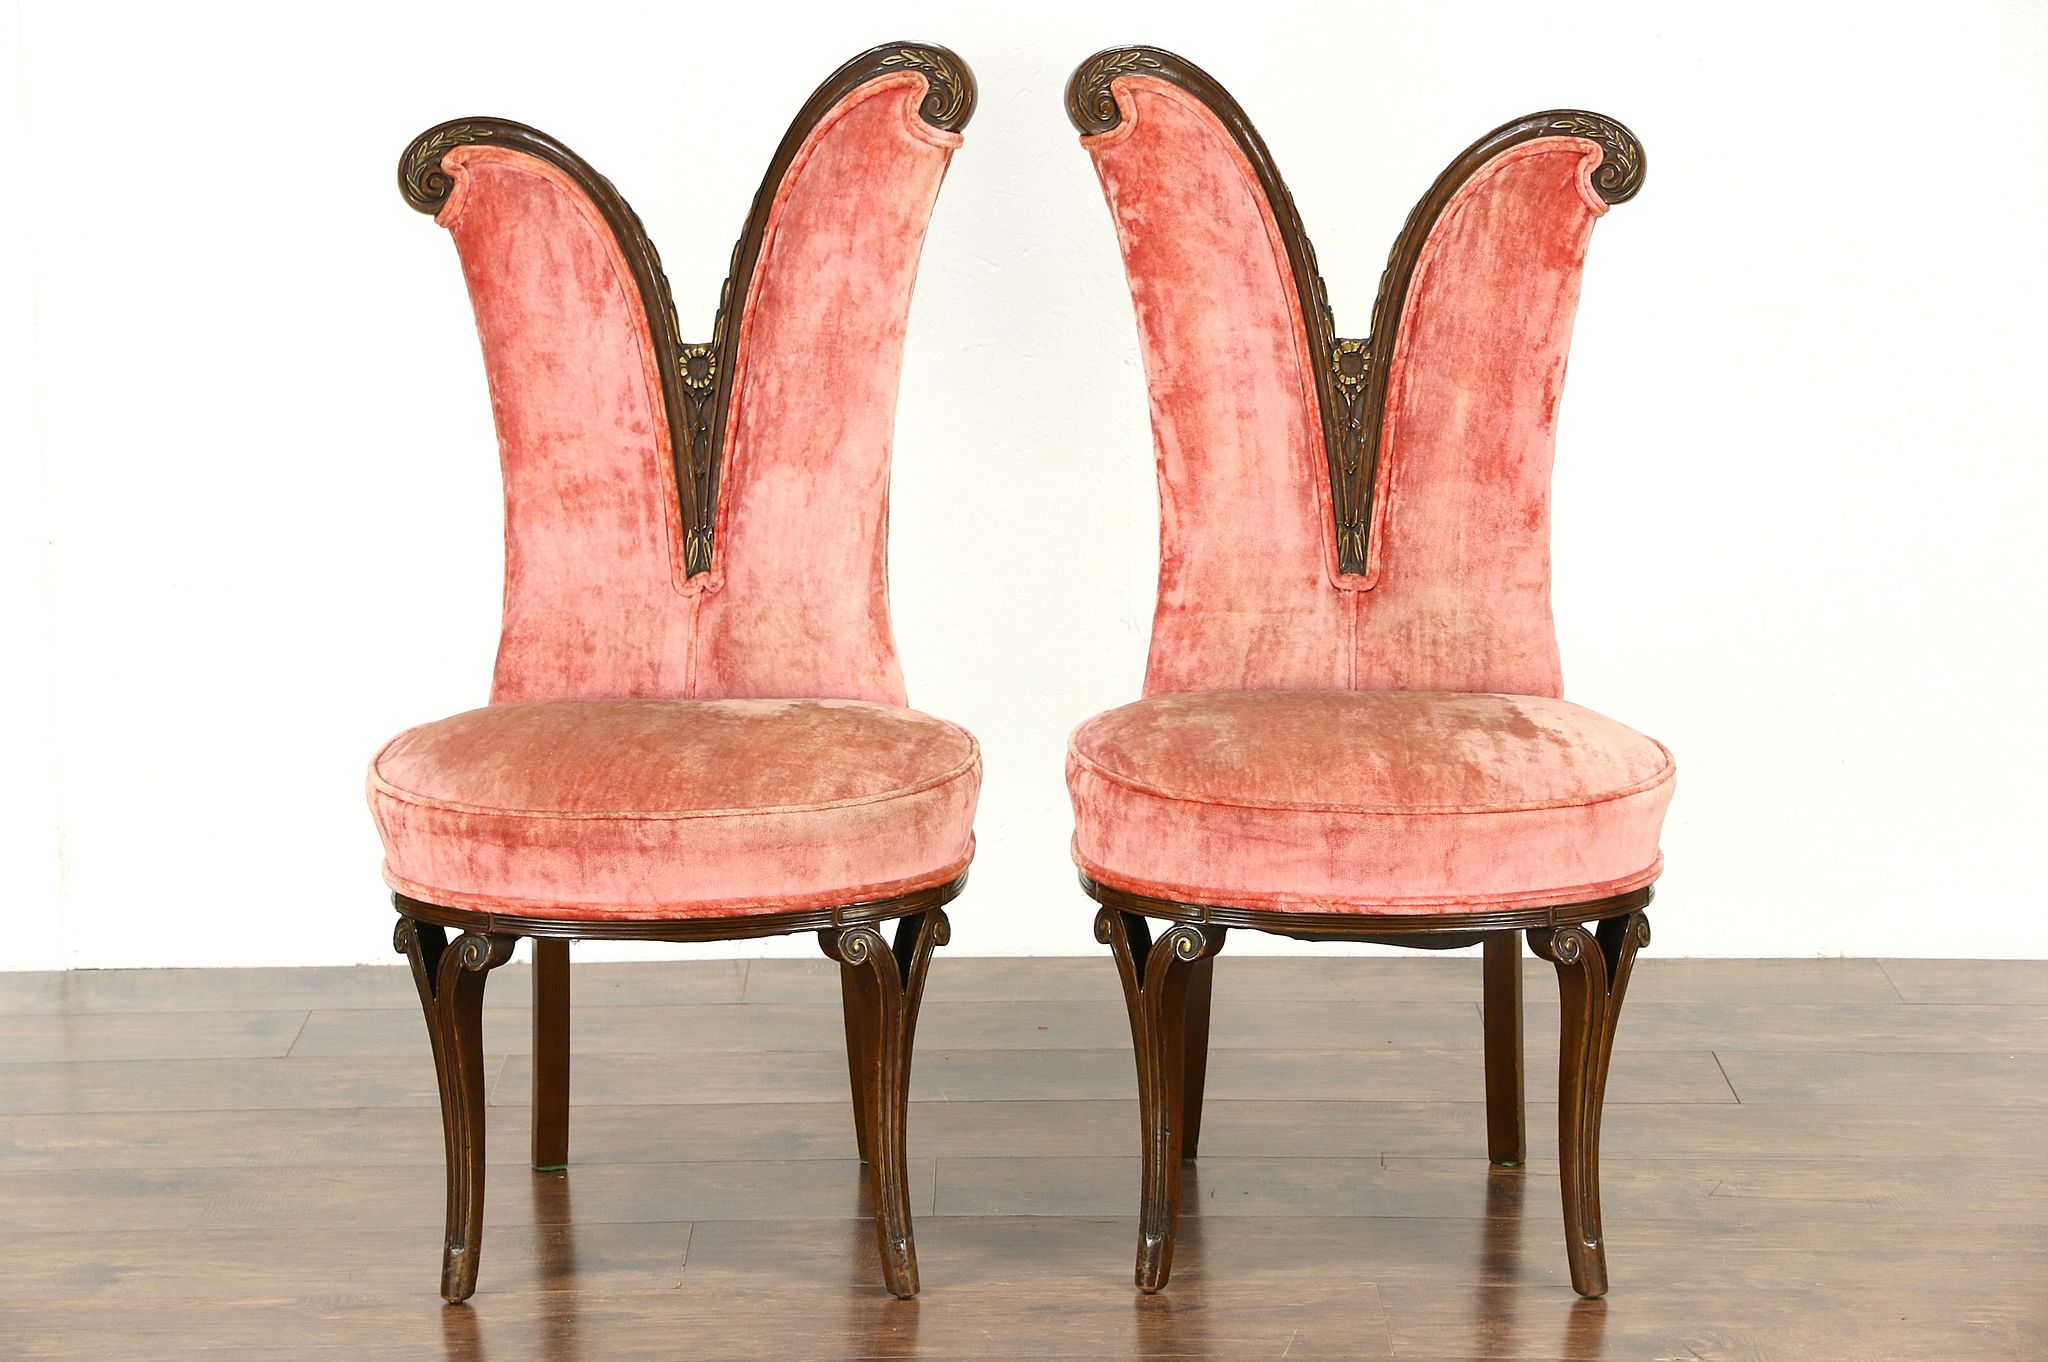 1950s Accent Chairs.Pair Hollywood Regency 1950 Vintage Accent Chairs All Original